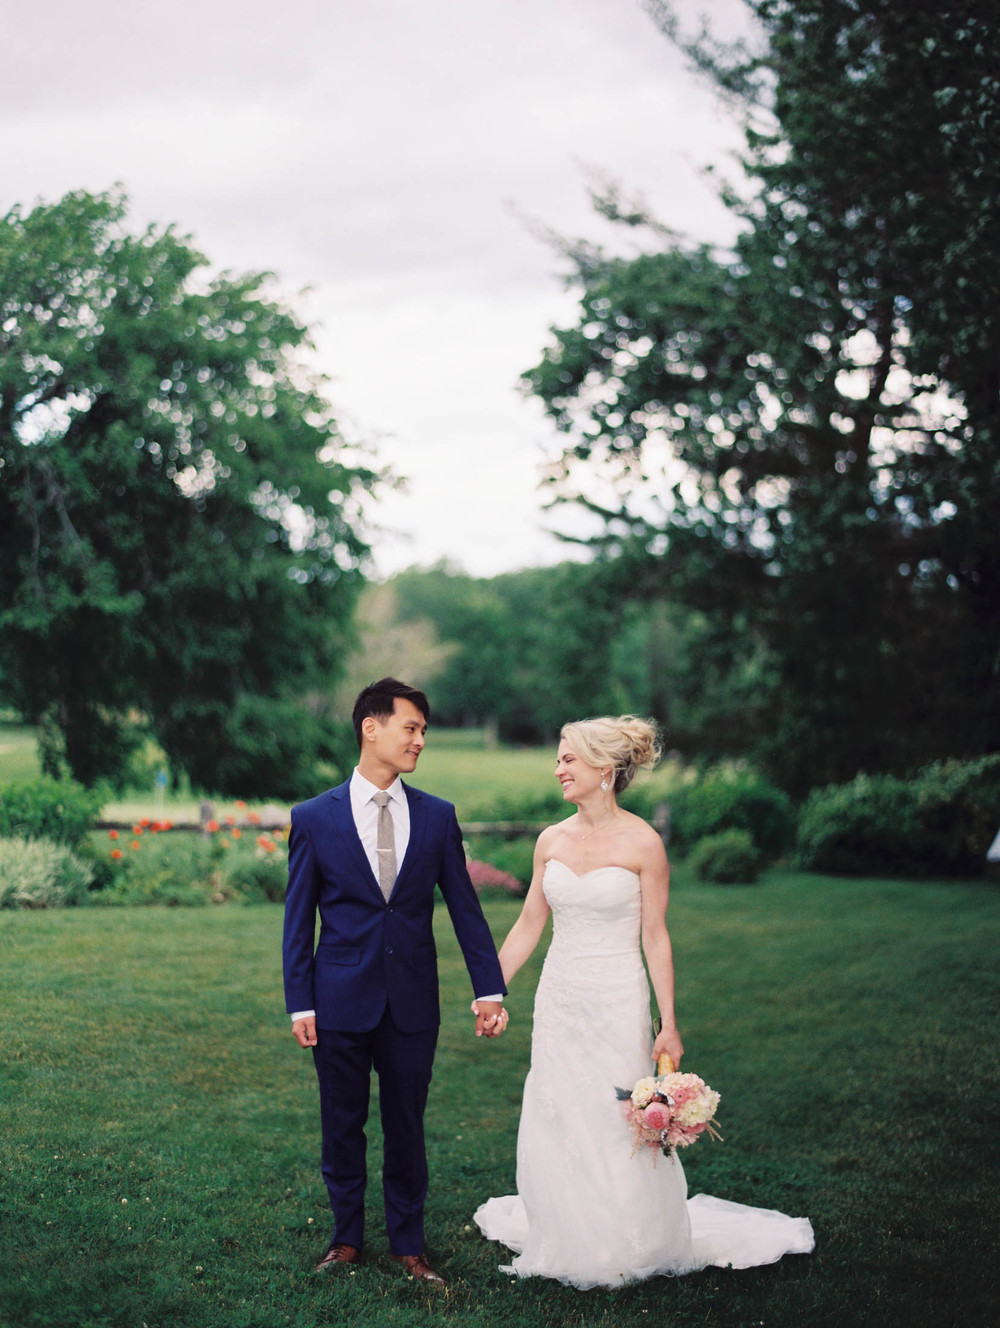 Blissful-Meadows-wedding-14.jpg